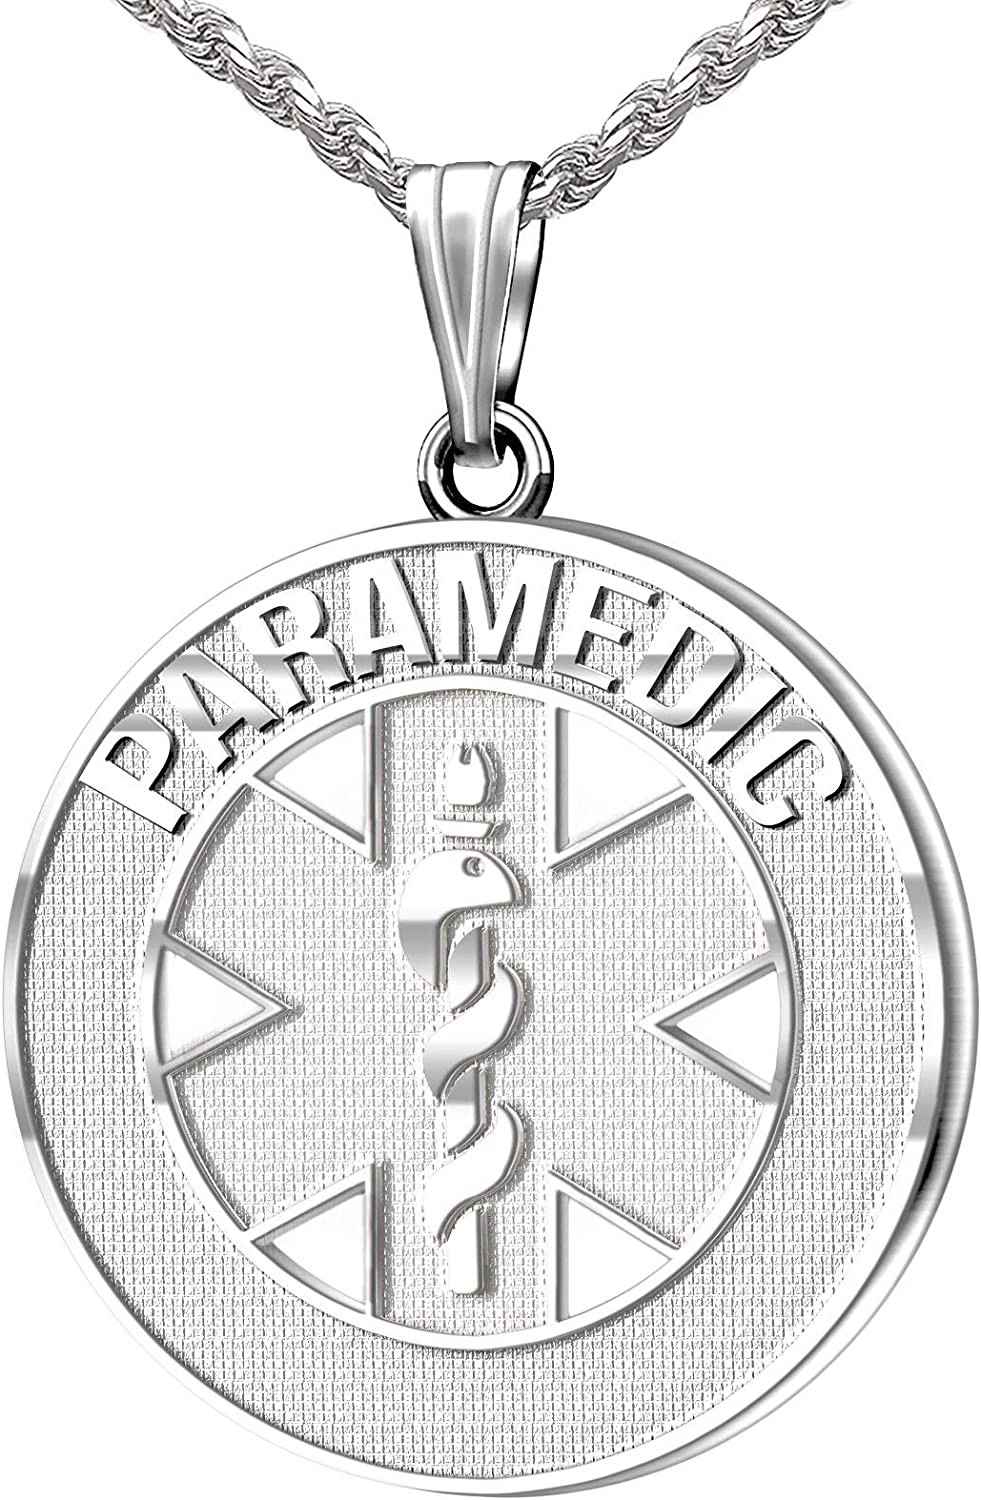 US Jewels and Gems 26mm 925 Some reservation Silver EMT Ranking TOP8 Sterling Medica Paramedic